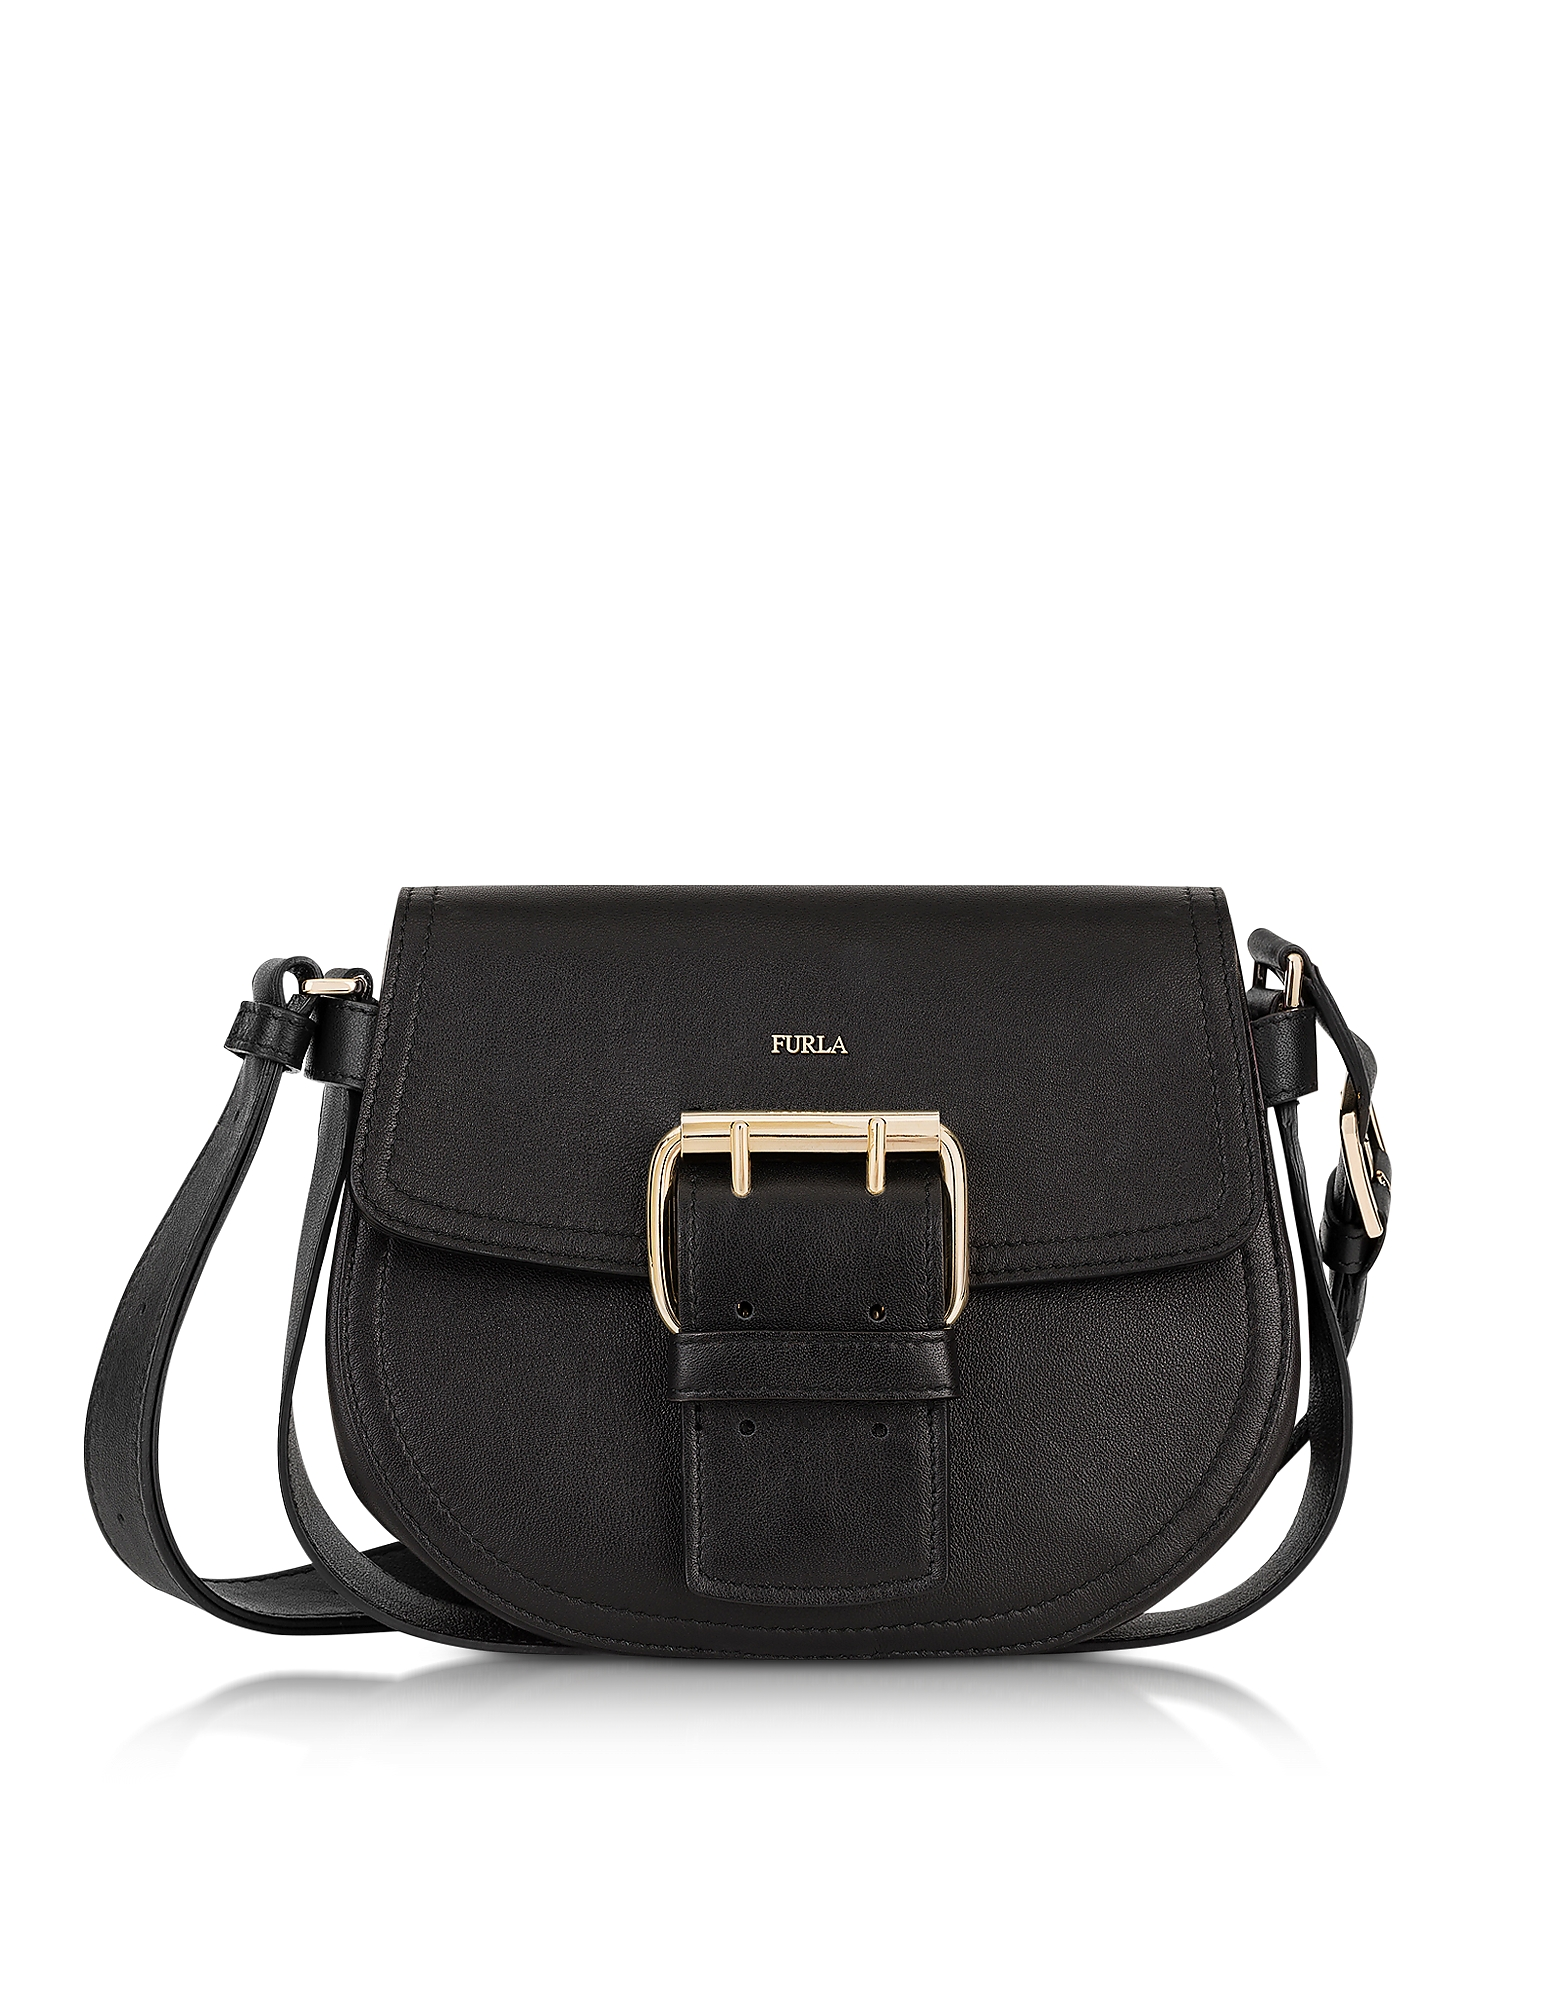 Furla Handbags, Onyx Leather Hashtag Small Crossbody Bag